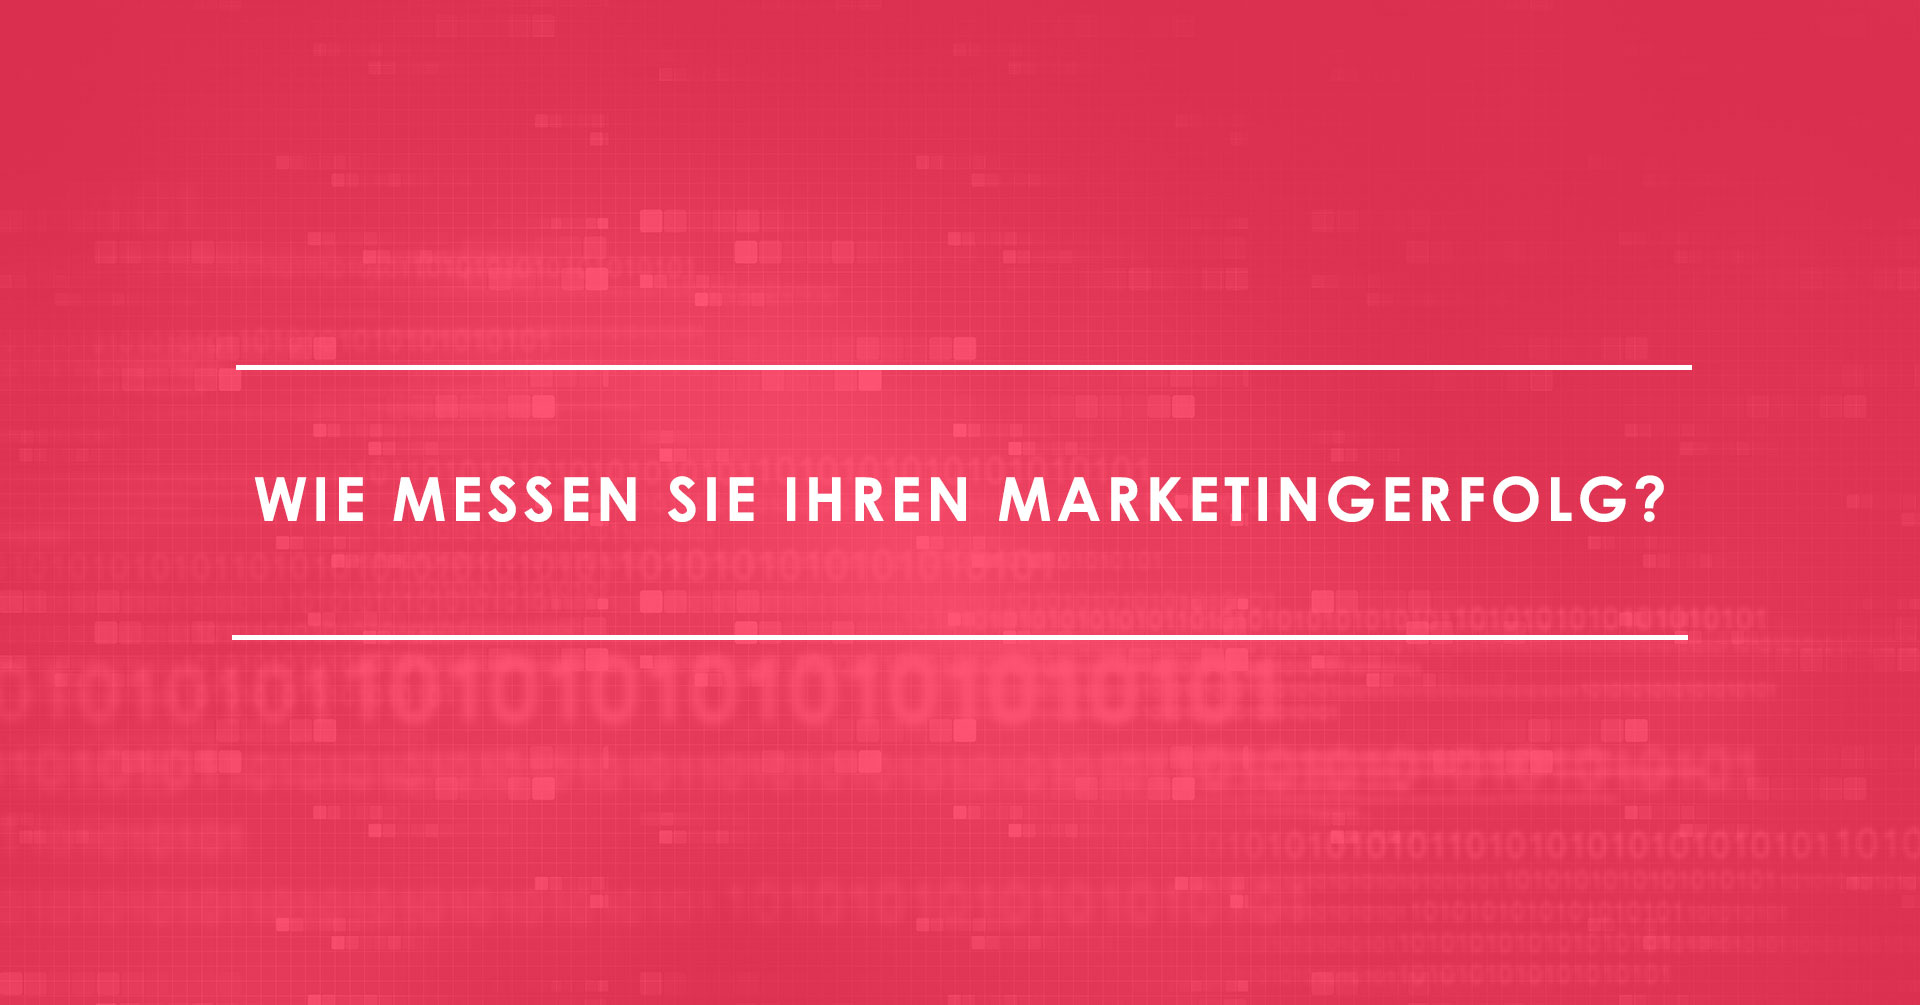 Mit-Marketing Analytics-die-wichtigsten-Marketing-Kennzahlen-erfassen